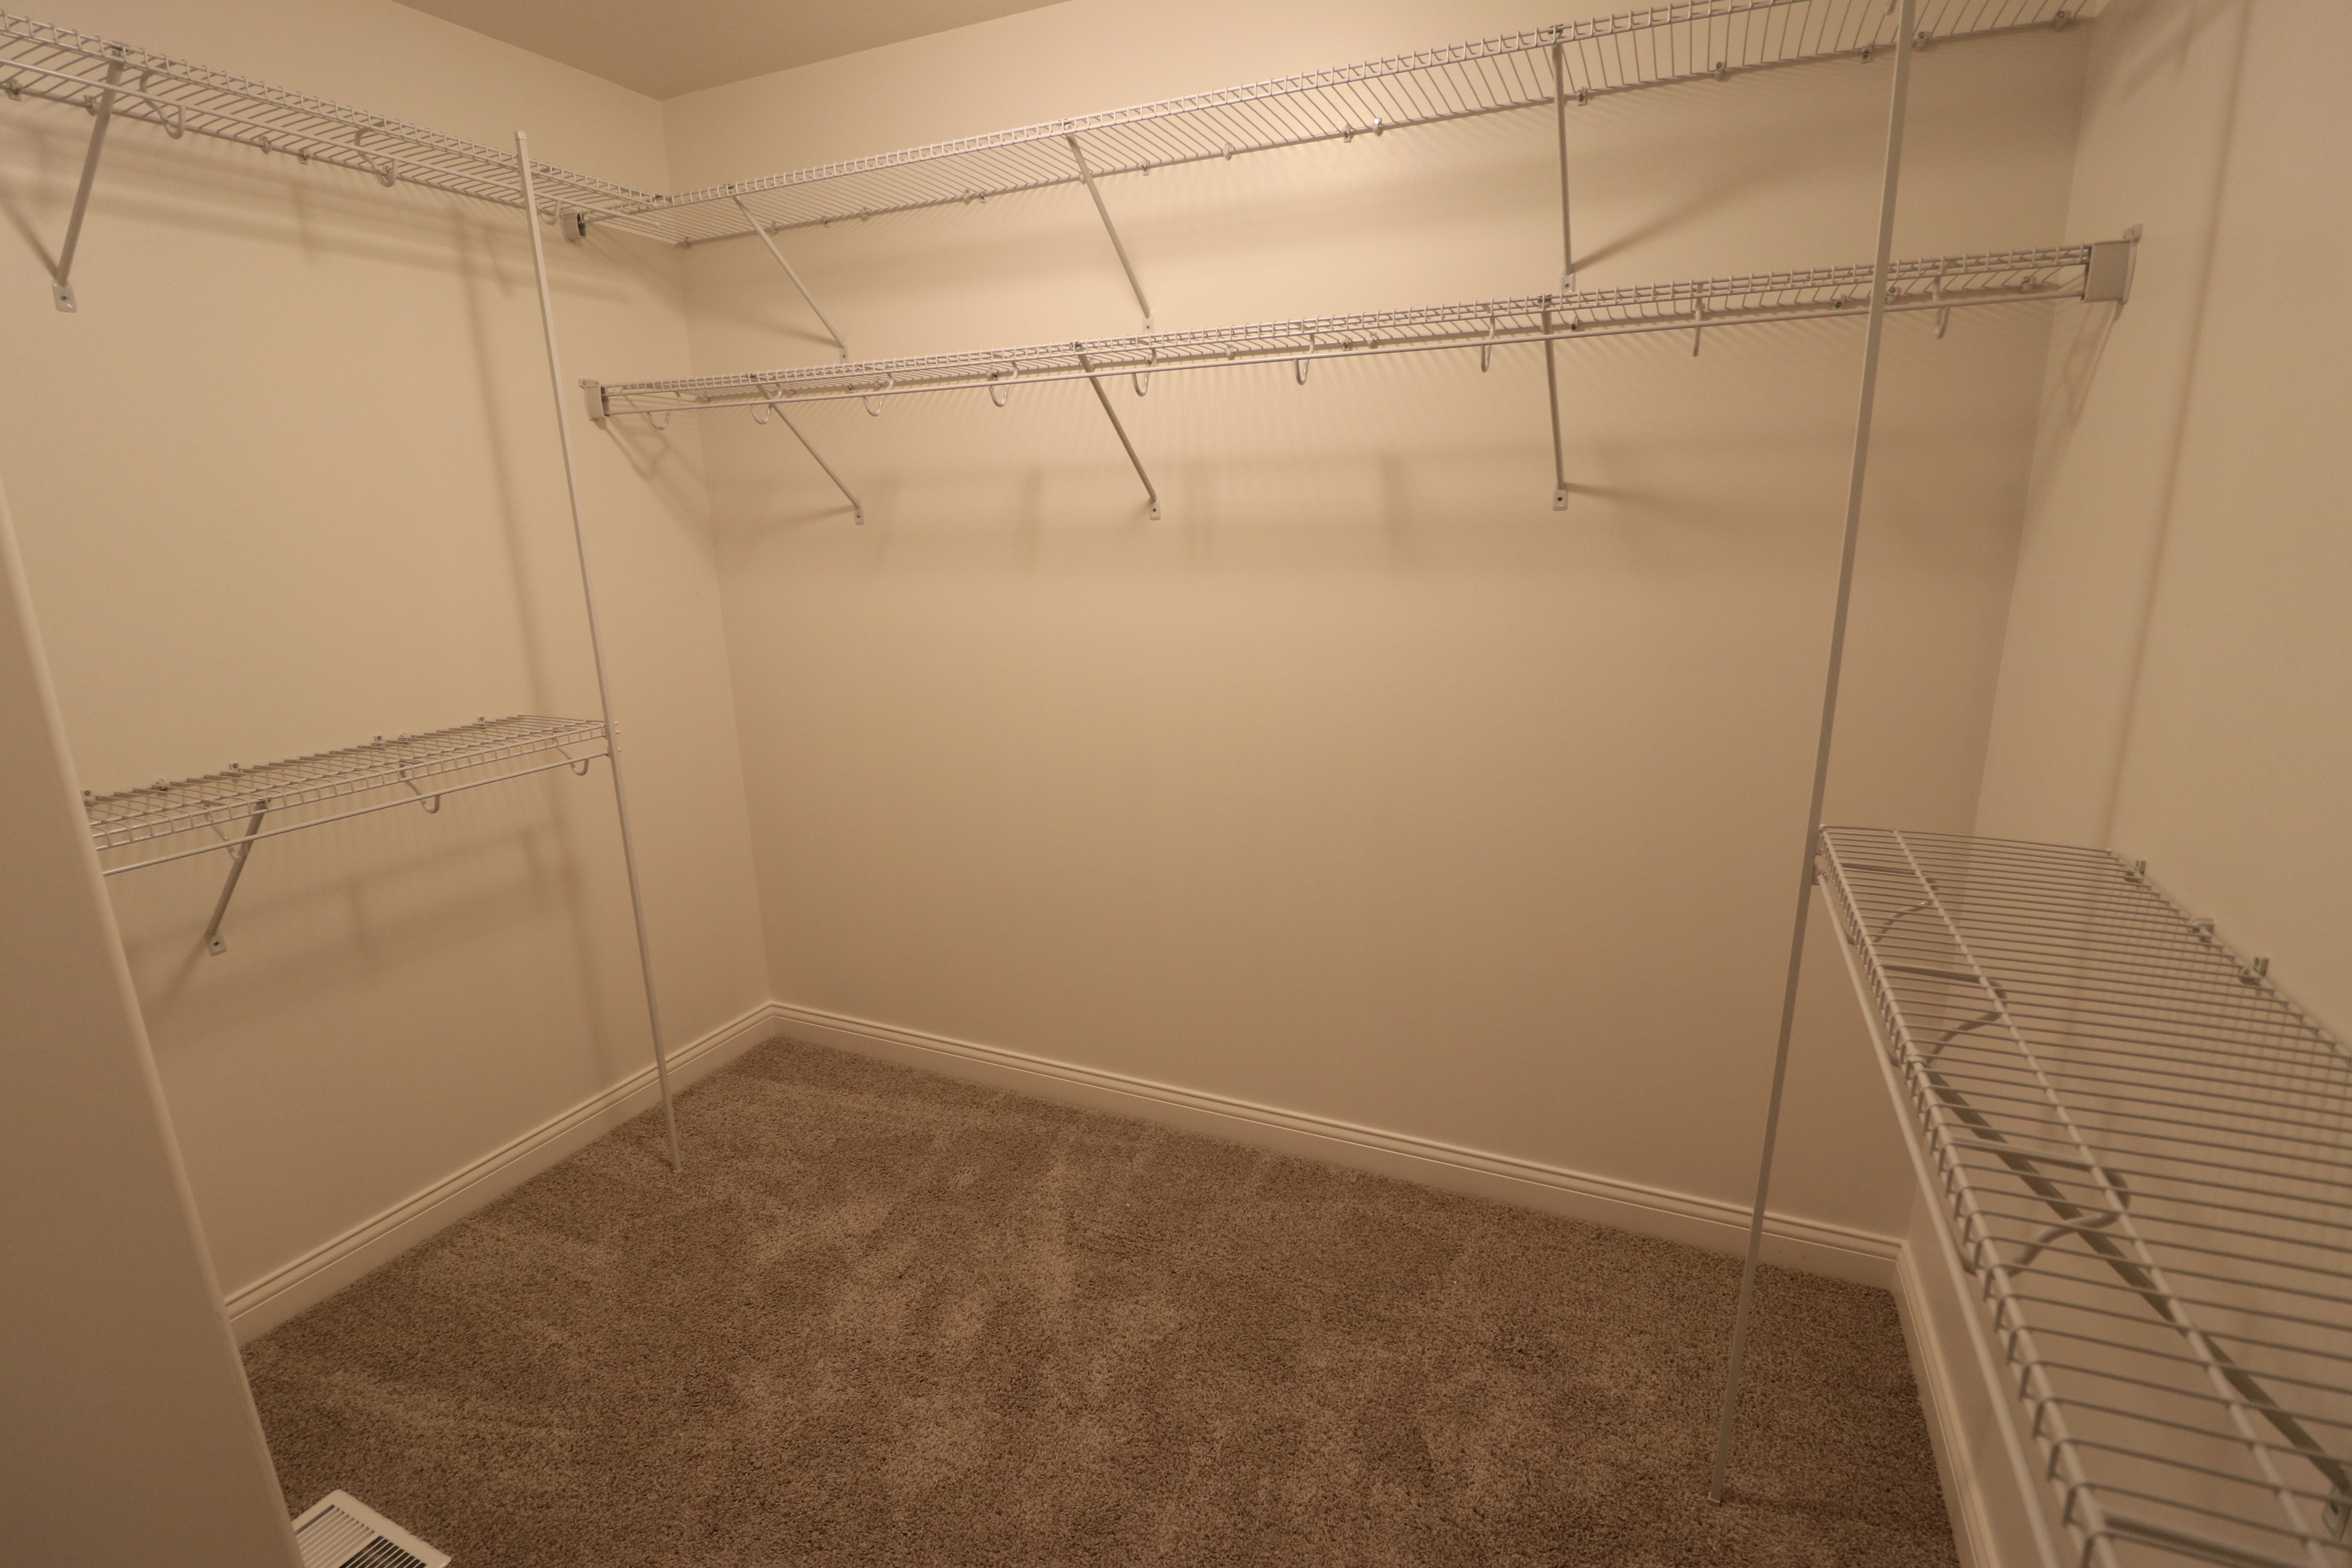 House for sale in the Dunlap peoria area big closet